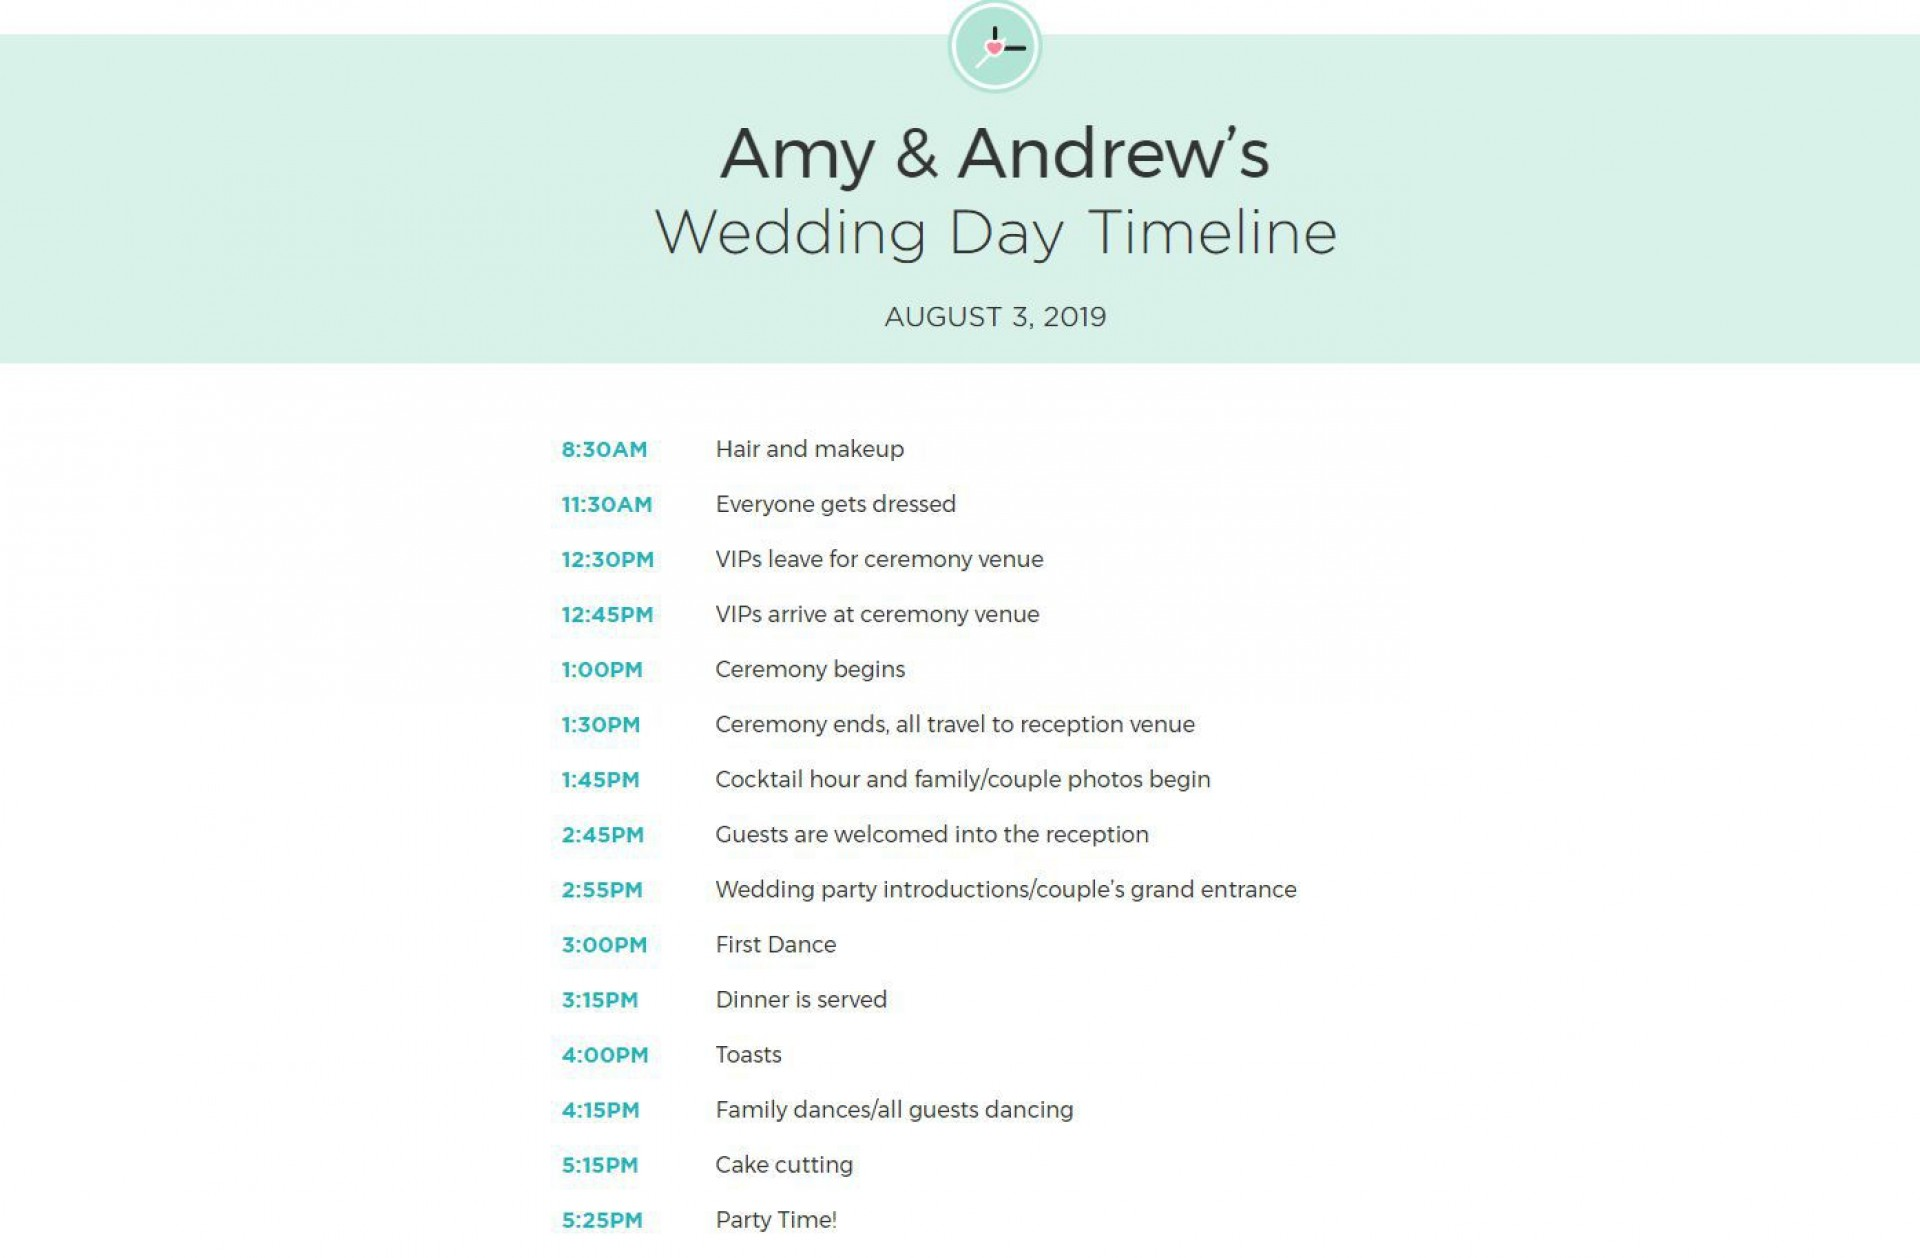 008 Impressive Wedding Weekend Itinerary Template Image  Day Word Reception Timeline Excel1920